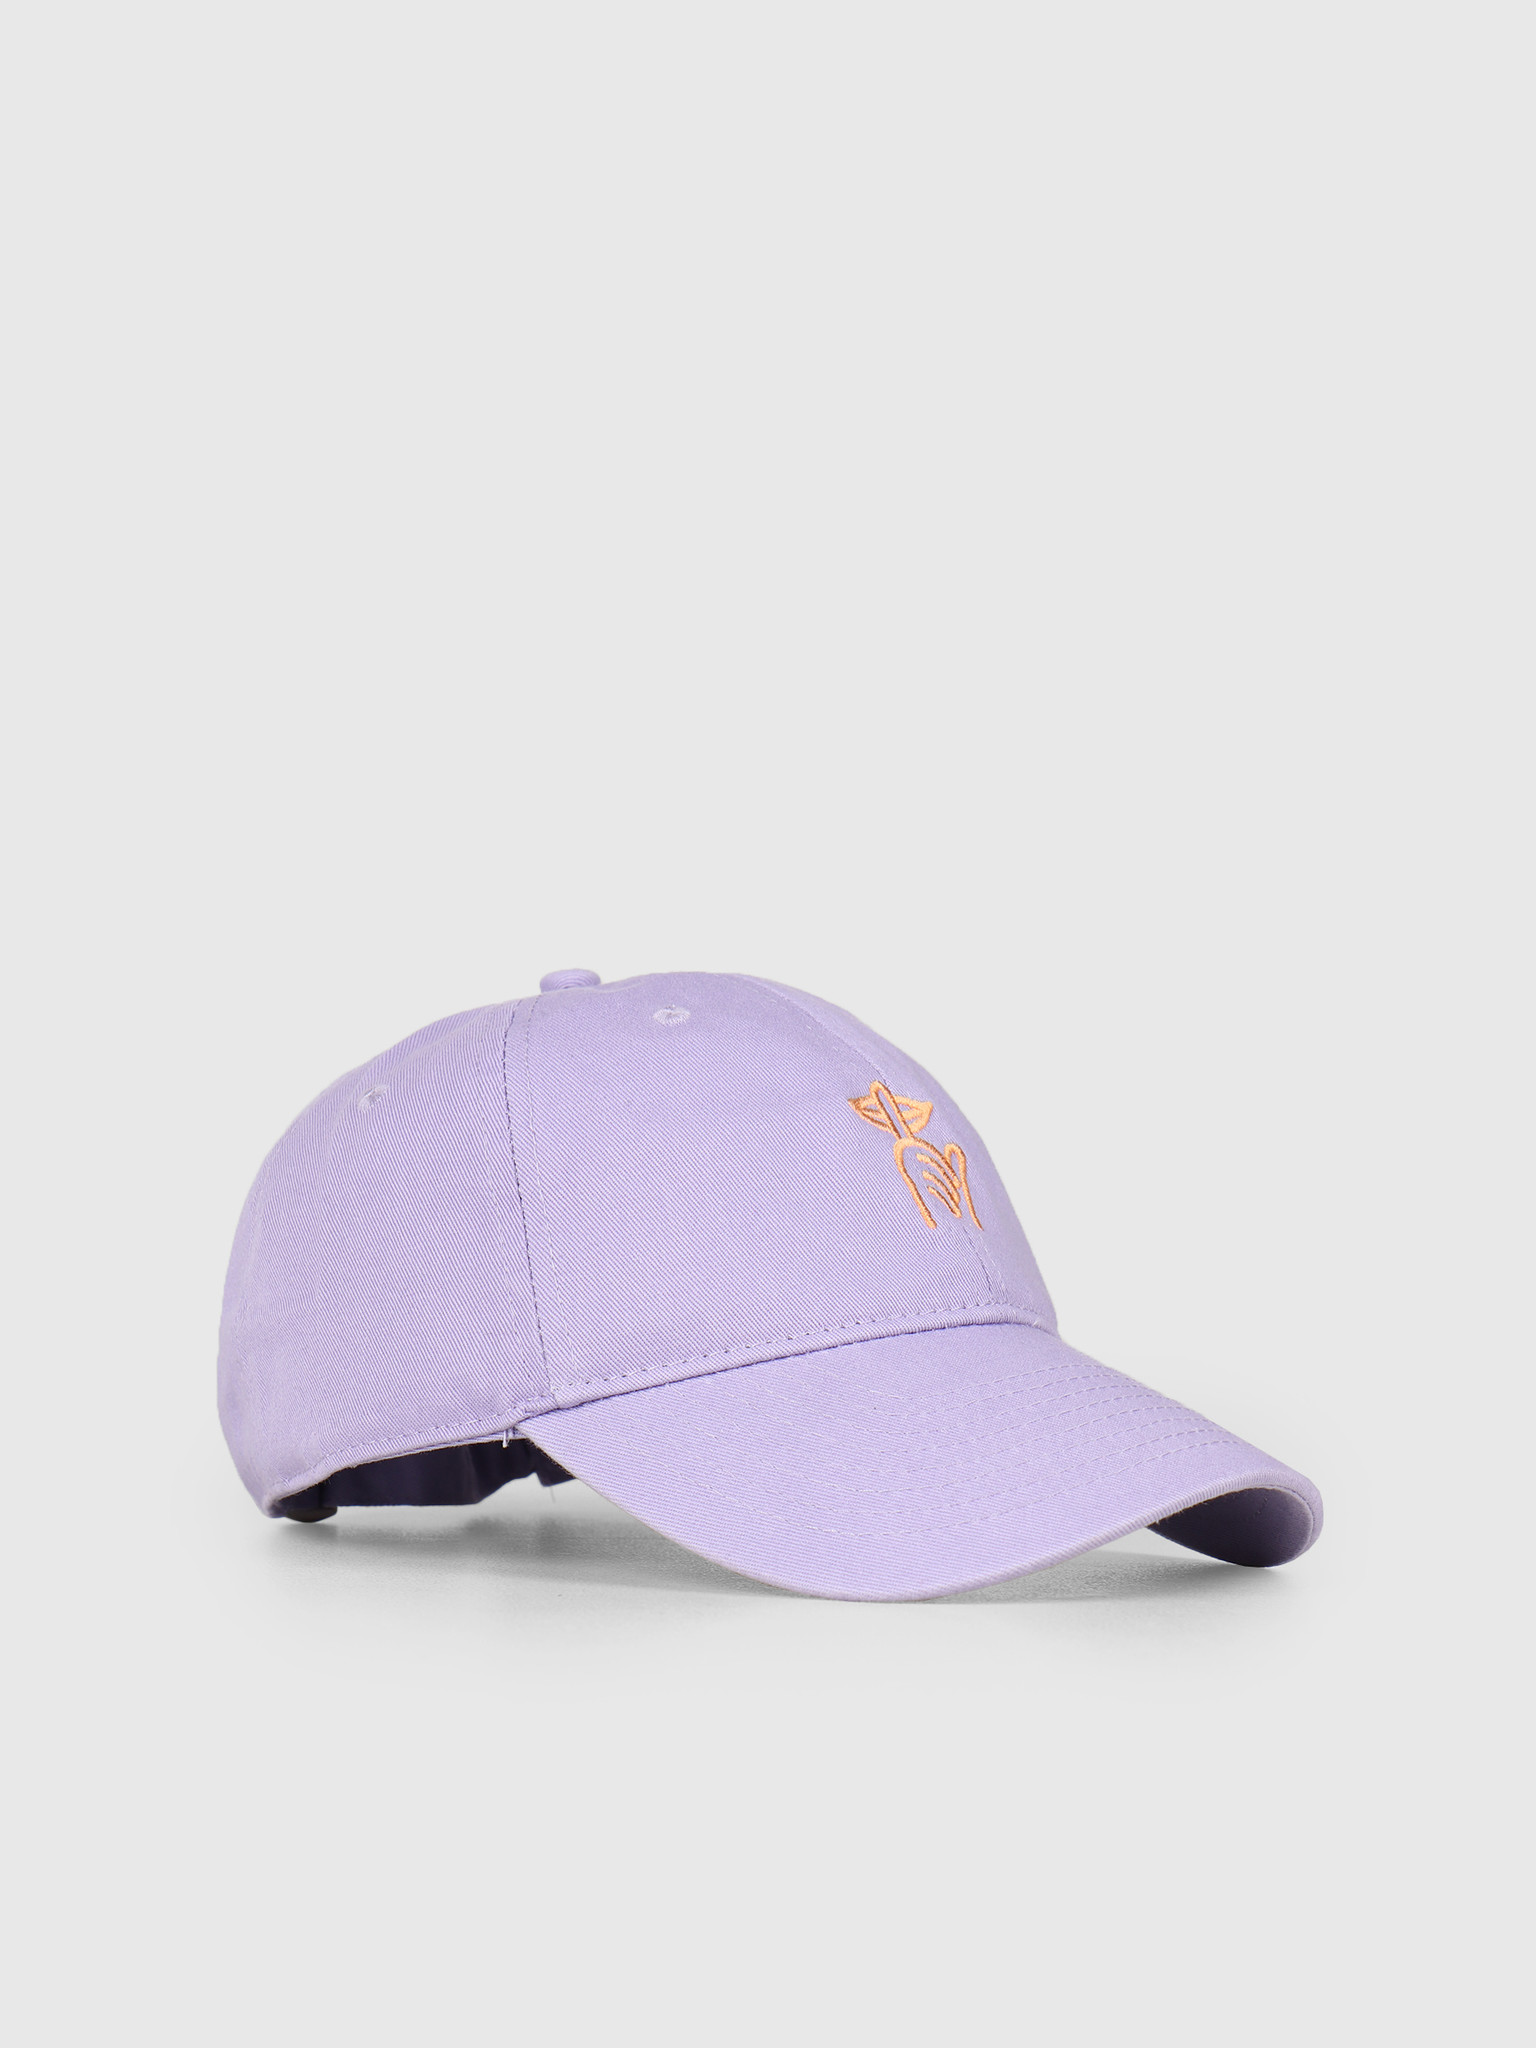 ffba698b495 The Quiet Life Shhh Dad Hat Purple 19SPD1-1233-PUR-OS - FRESHCOTTON